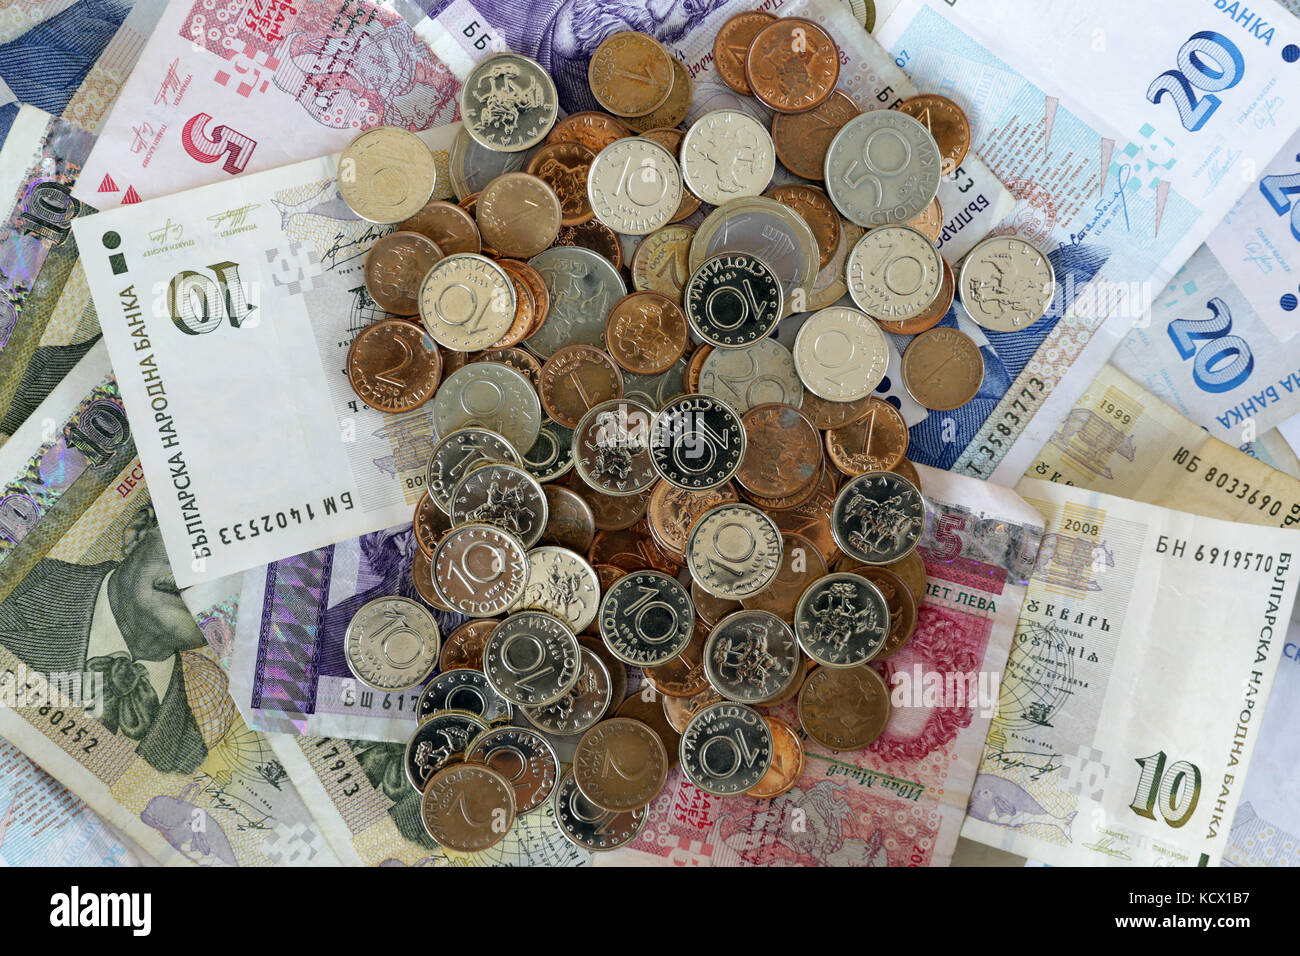 Bulgarian lev stock photos bulgarian lev stock images alamy bulgarian lev money banknotes stacked and photographed from above paper money and coins stock biocorpaavc